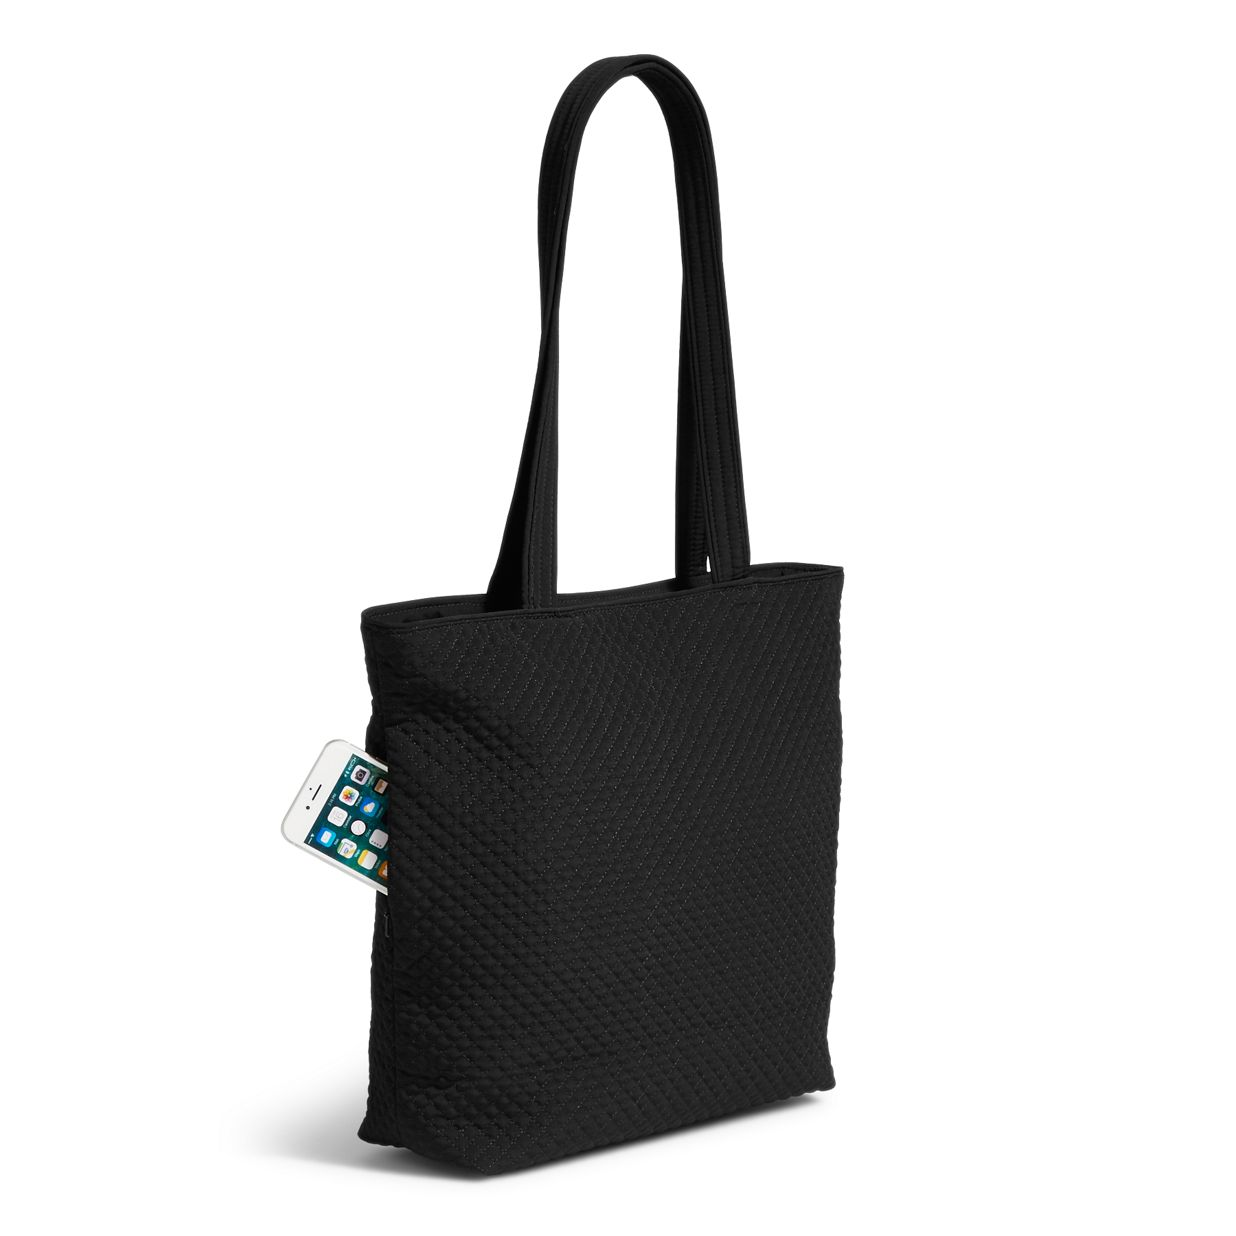 b17ebabe326b ... Image of Iconic Tote Bag in Classic Black ...